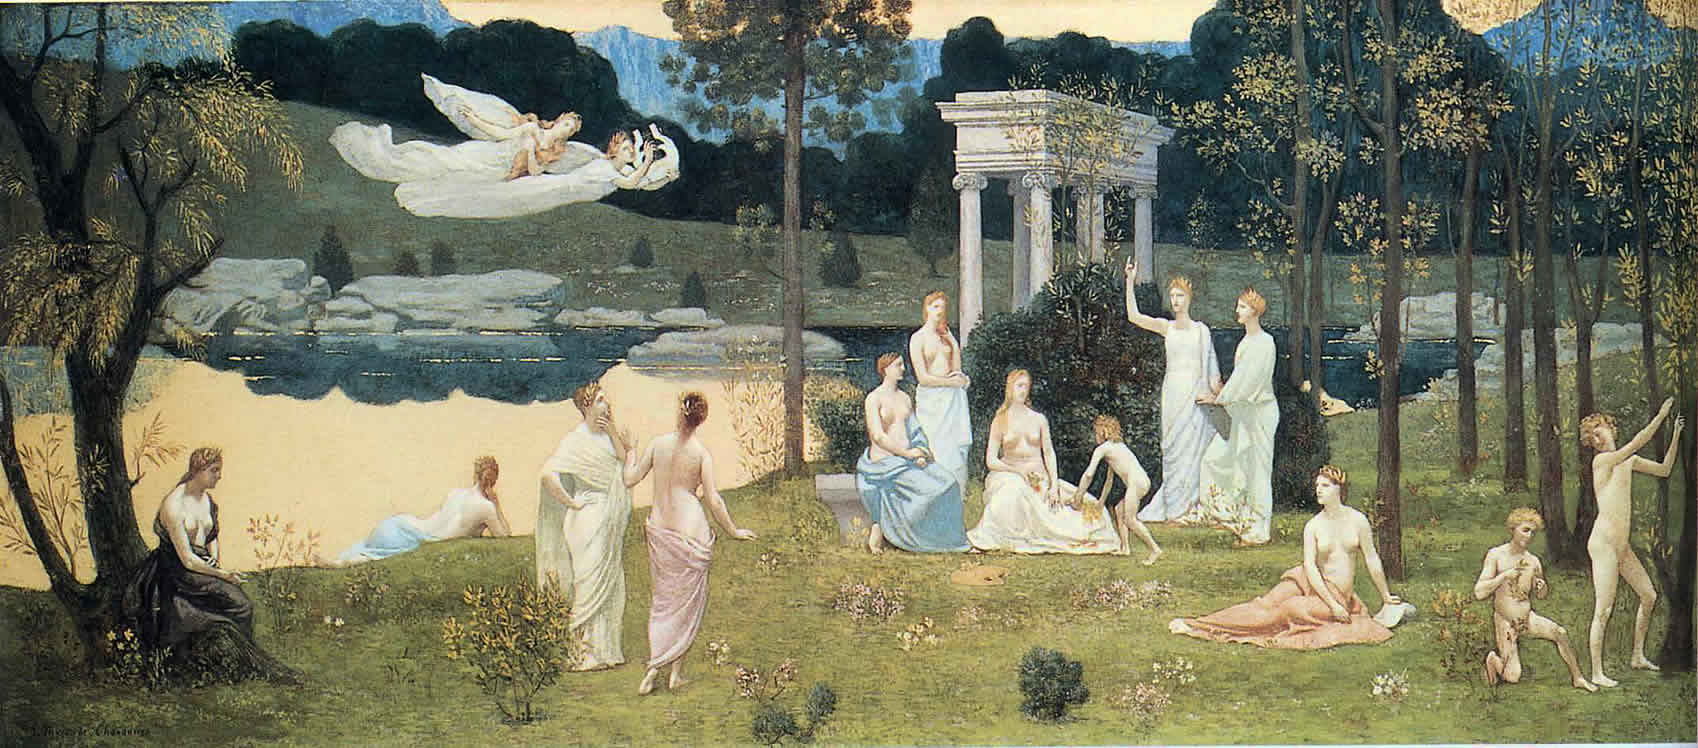 https://upload.wikimedia.org/wikipedia/commons/4/48/Arts_and_the_Muses_by_Pierre_Puvis_de_Chavannes.jpg